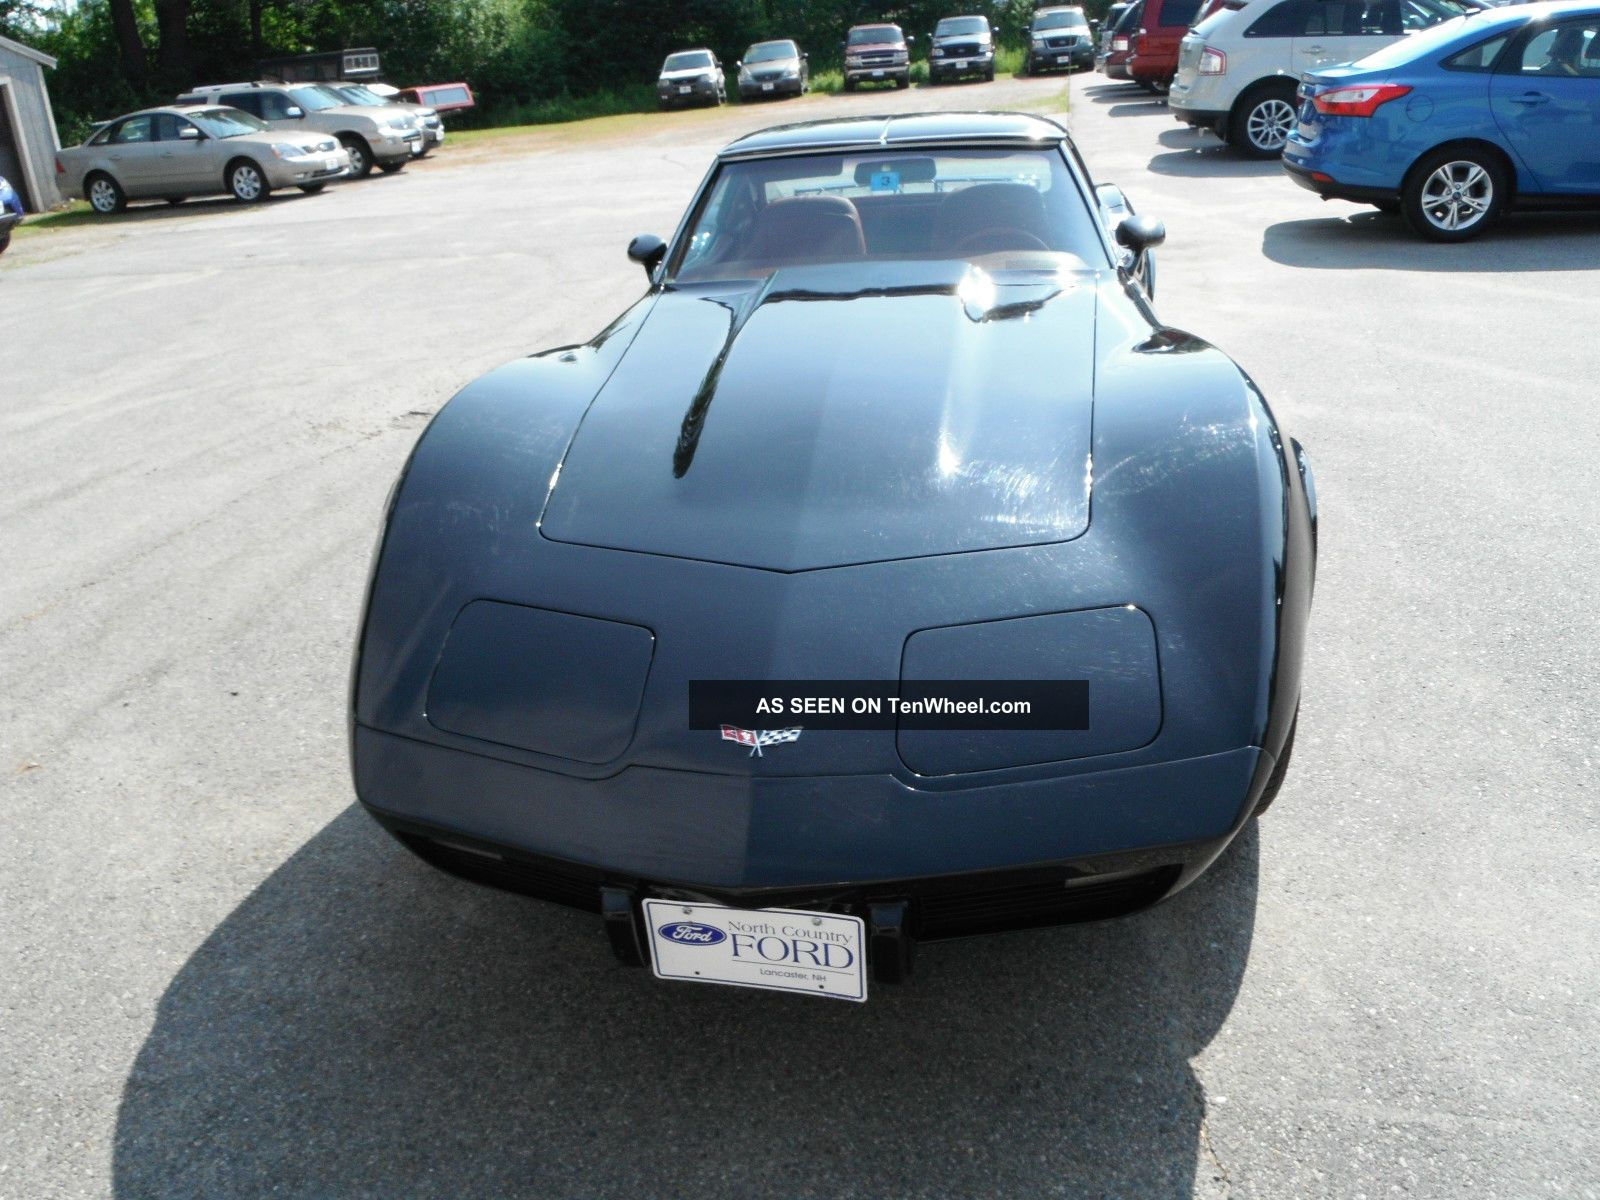 1977 Chevrolet Corvette 350 V8 4 - Speed Corvette photo